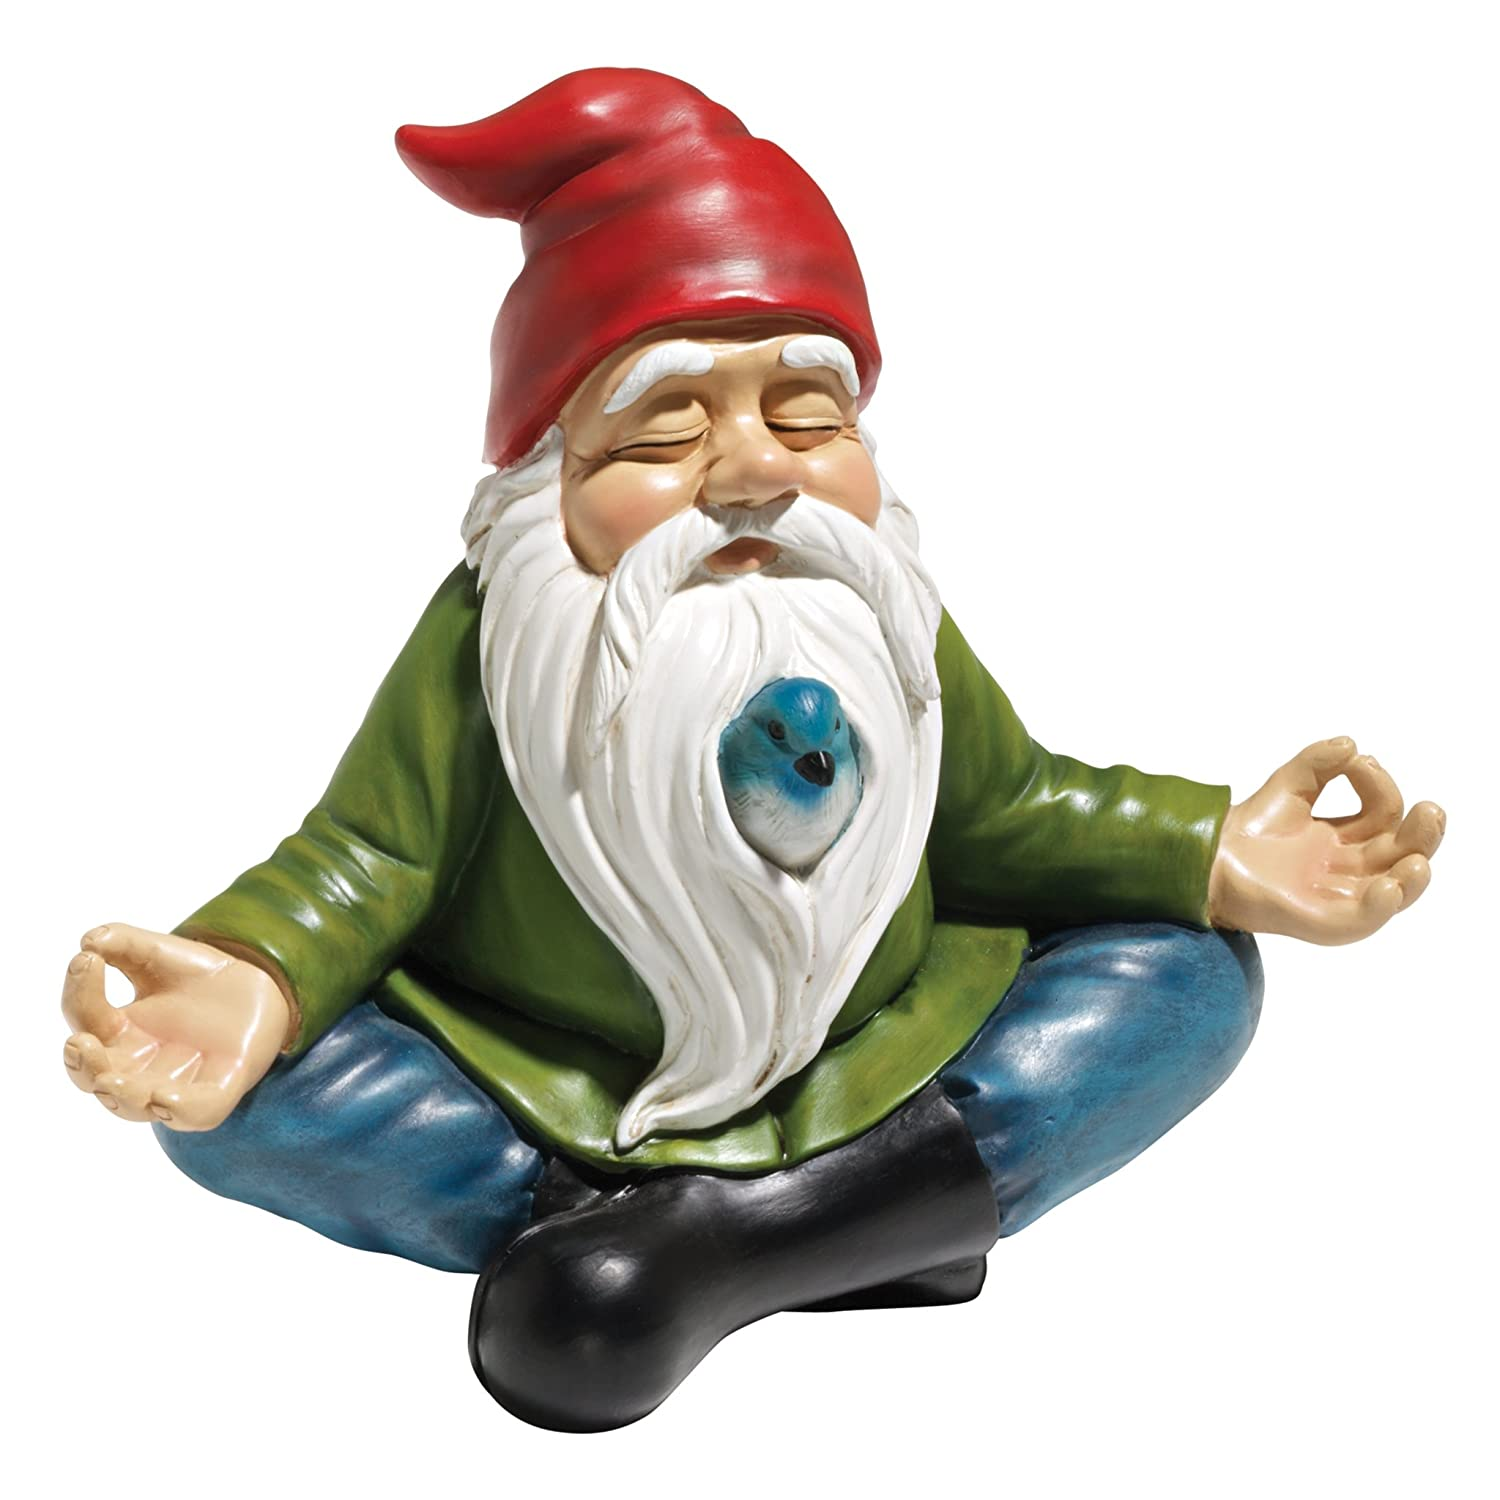 Amazon.com : Design Toscano Zen Garden Gnome Statue, 8 Inch, Polyresin,  Full Color : Garden U0026 Outdoor